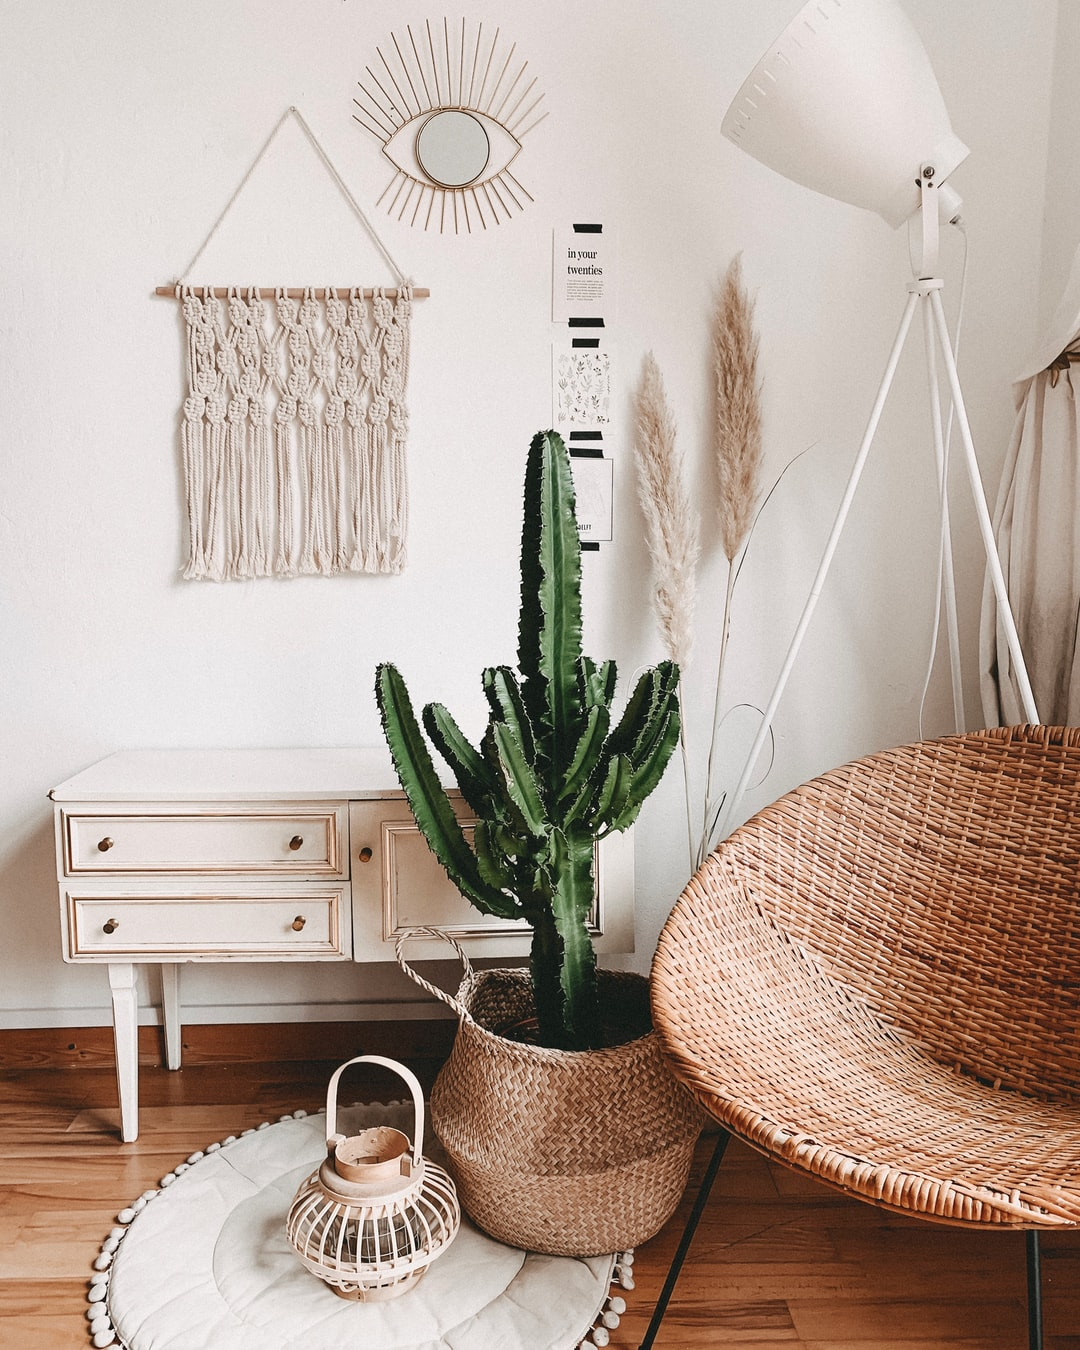 Cactus and Interior love - Please tag my instagram @anotherlovely_